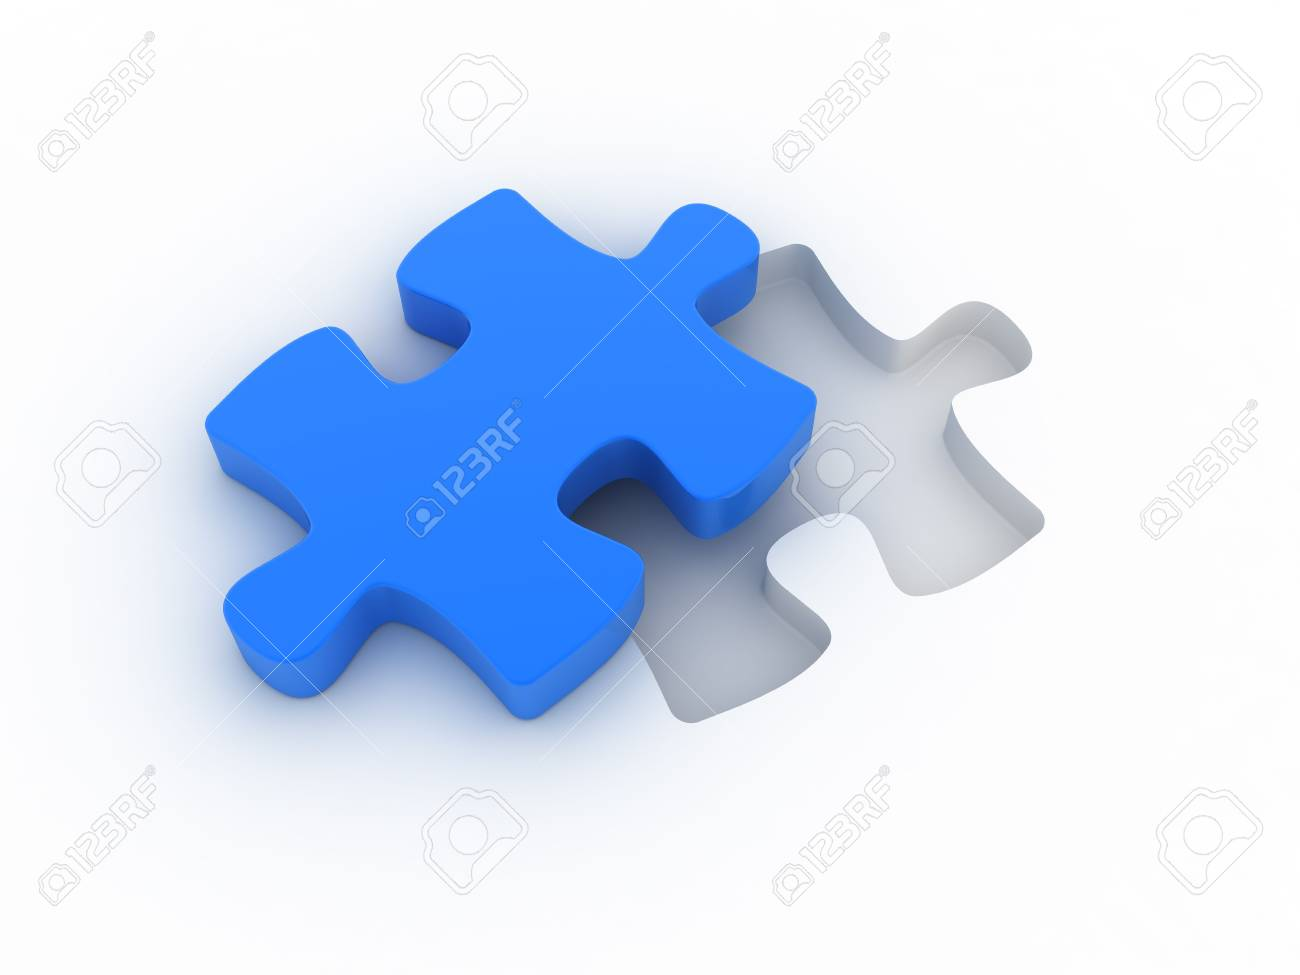 A blue puzzle is cut out of a white plane. Concept image for strategy, inspiration, organization,... Stock Photo - 6622101